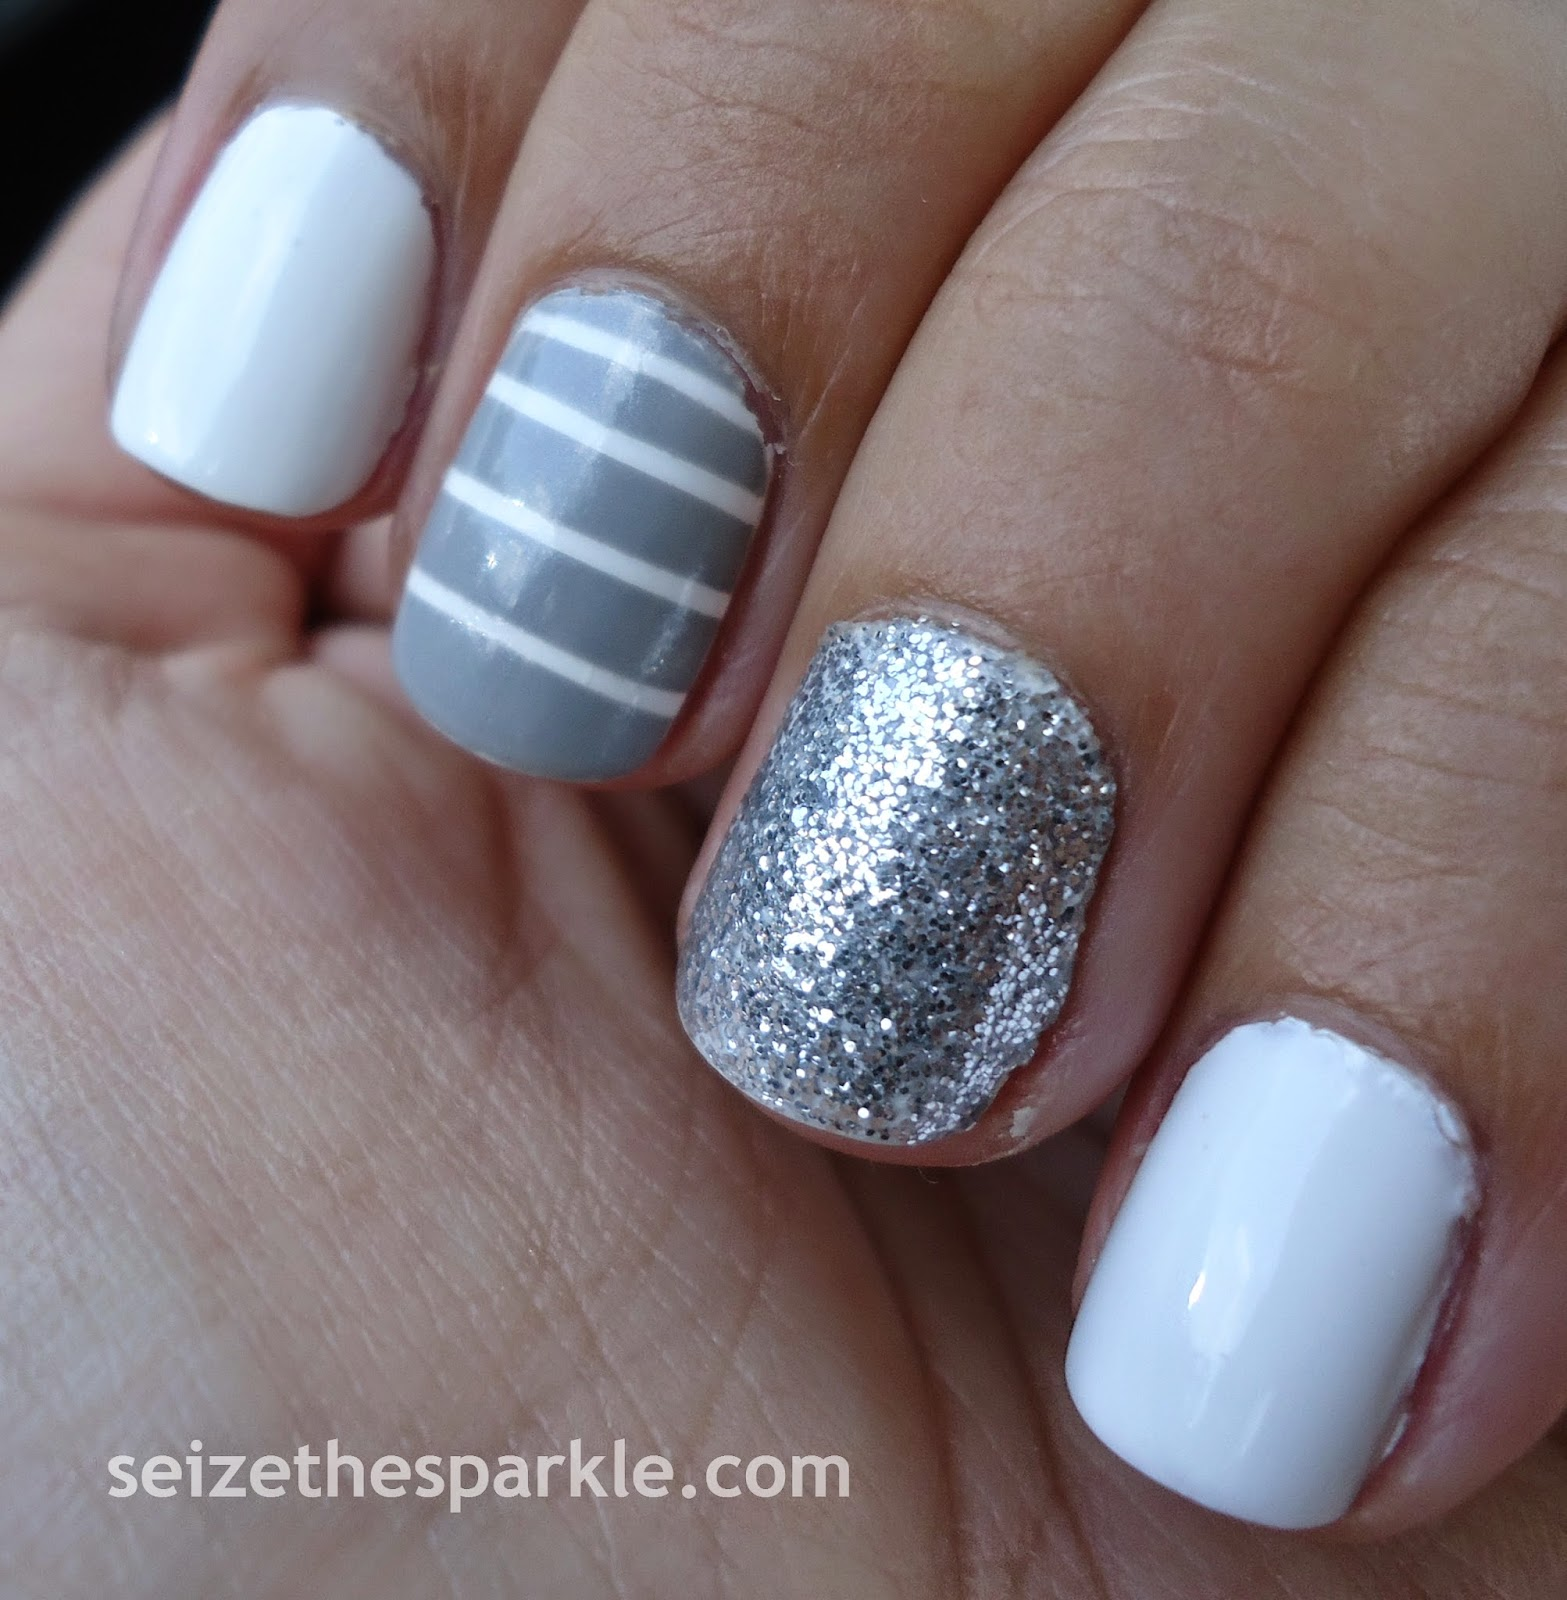 Gray, White, and Silver Skittles